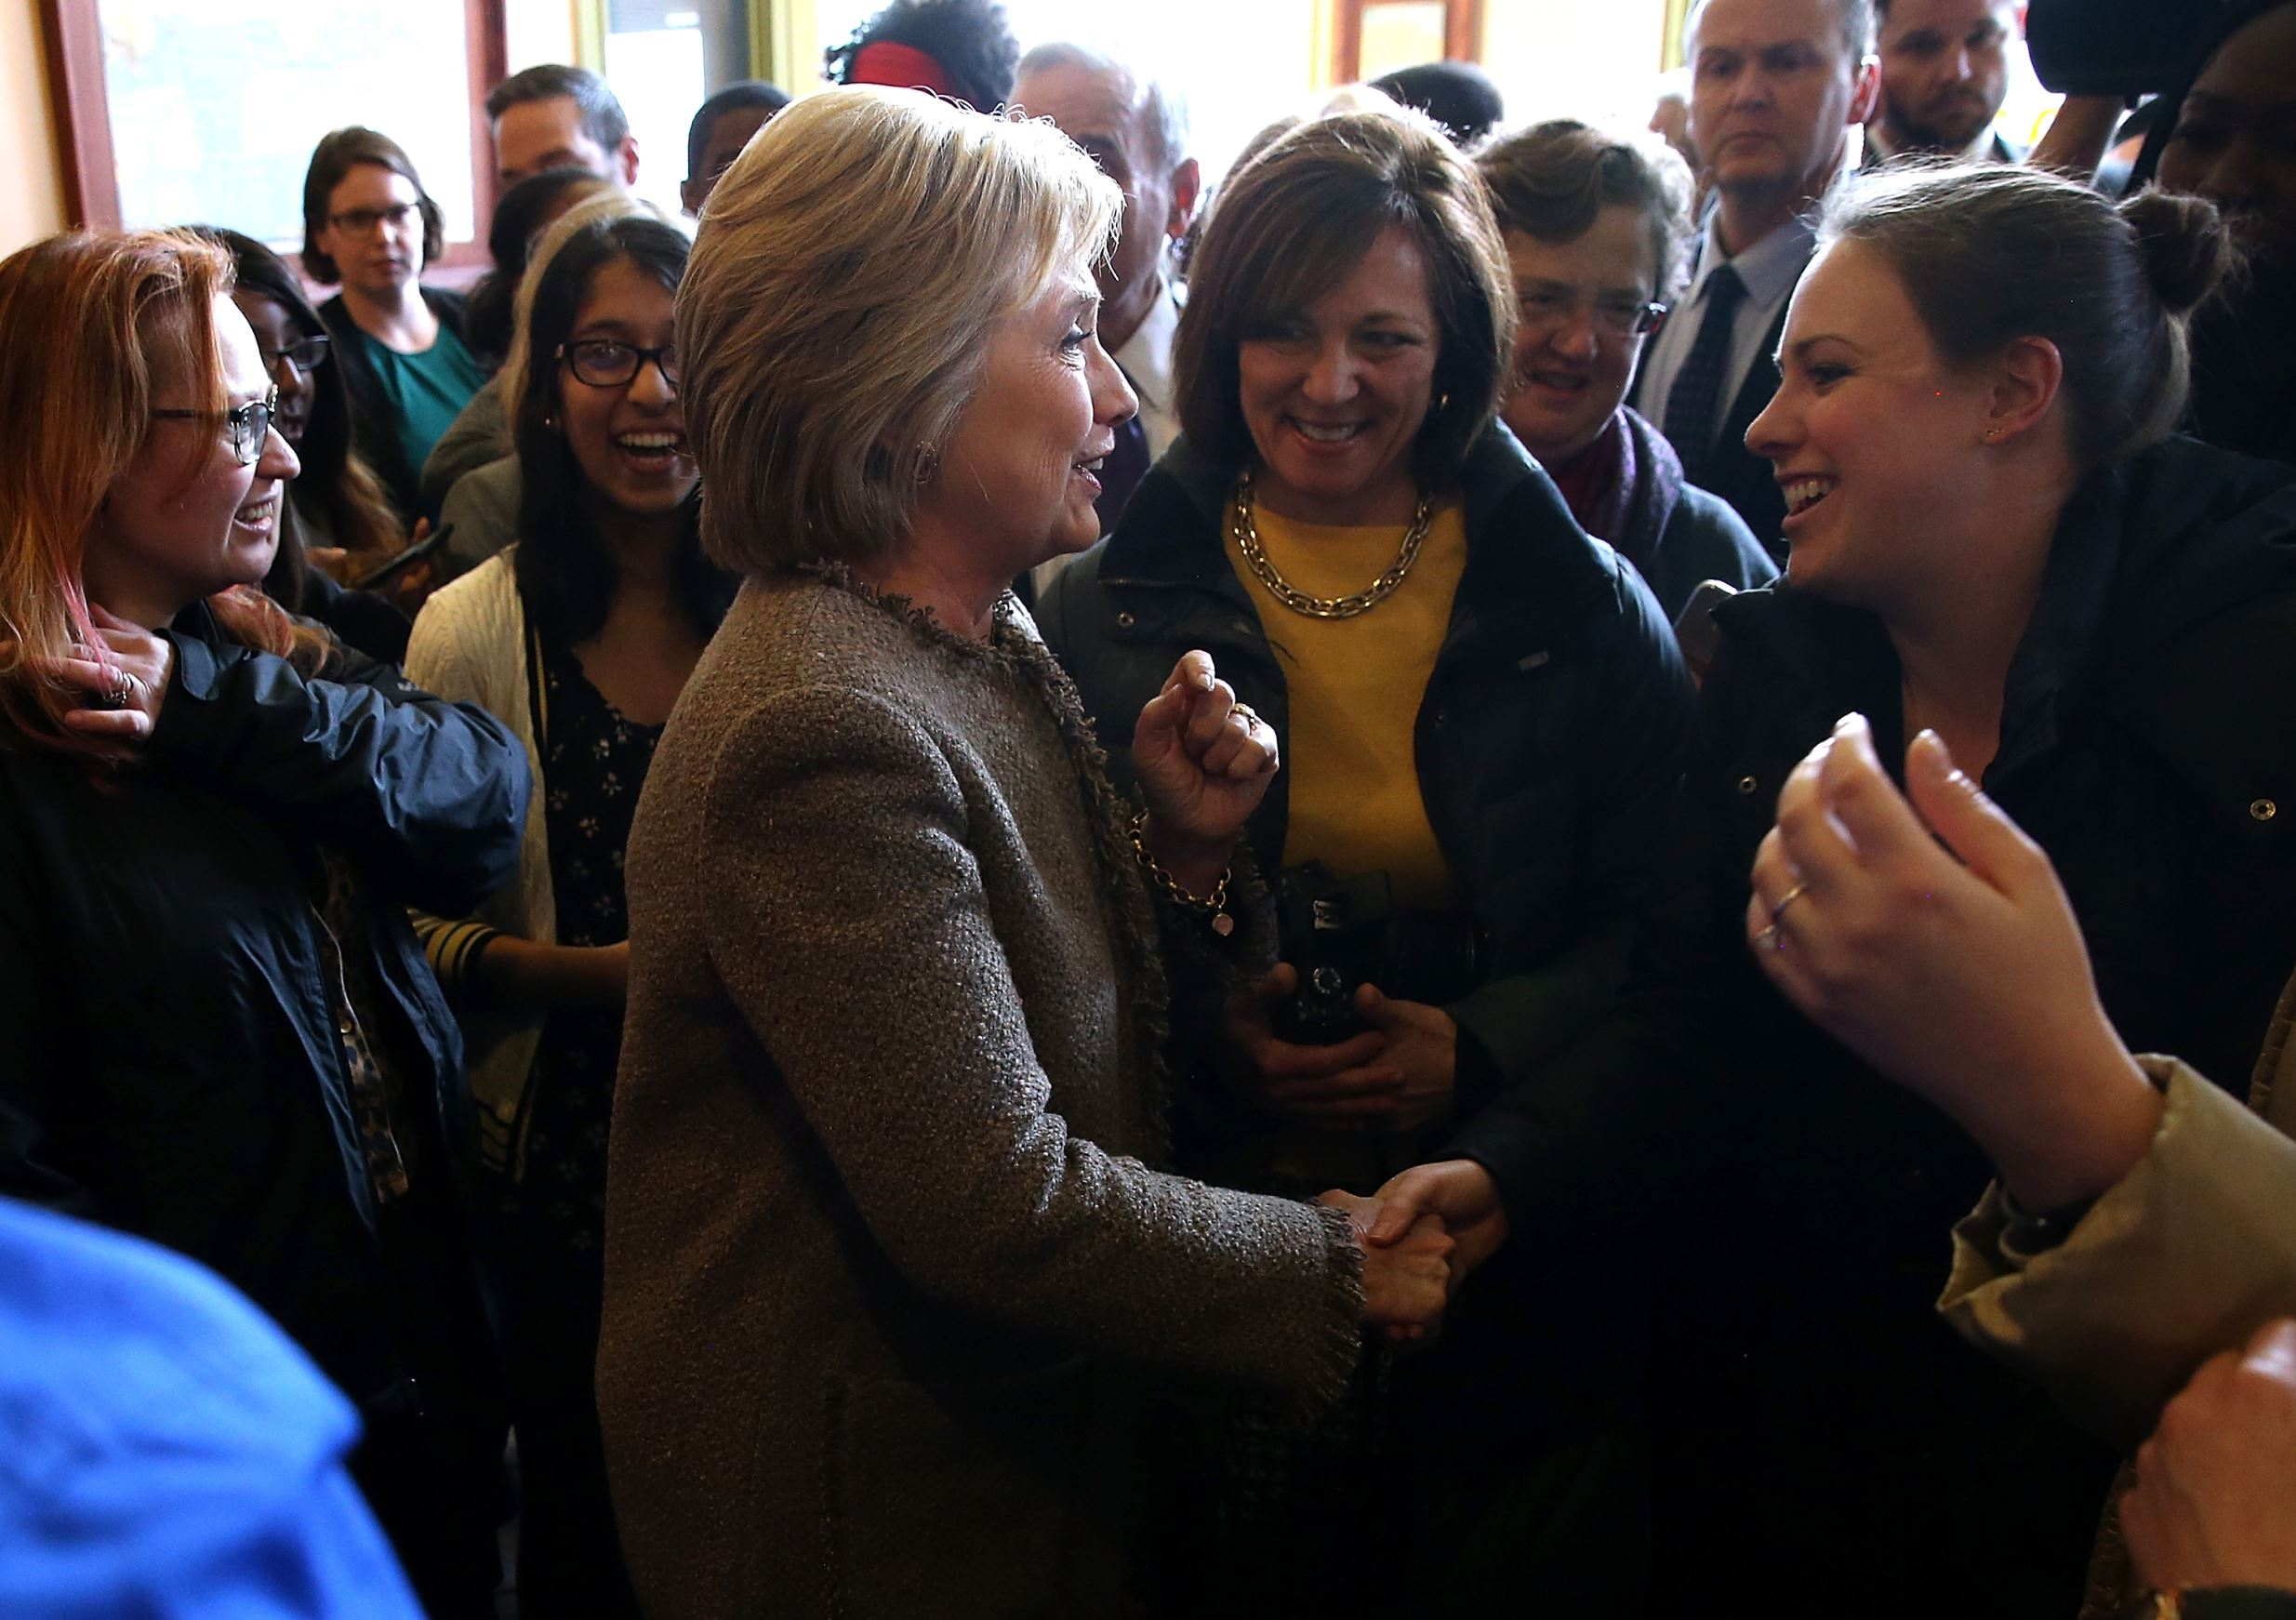 Democratic presidential candidate former Secretary of State Hillary Clinton greets patrons at Mapps Coffee on March 1, 2016 in Minneapolis, Minnesota. Hillary Clinton is campaigning in Minnesota as Super Tuesday voting takes place in 12 states.